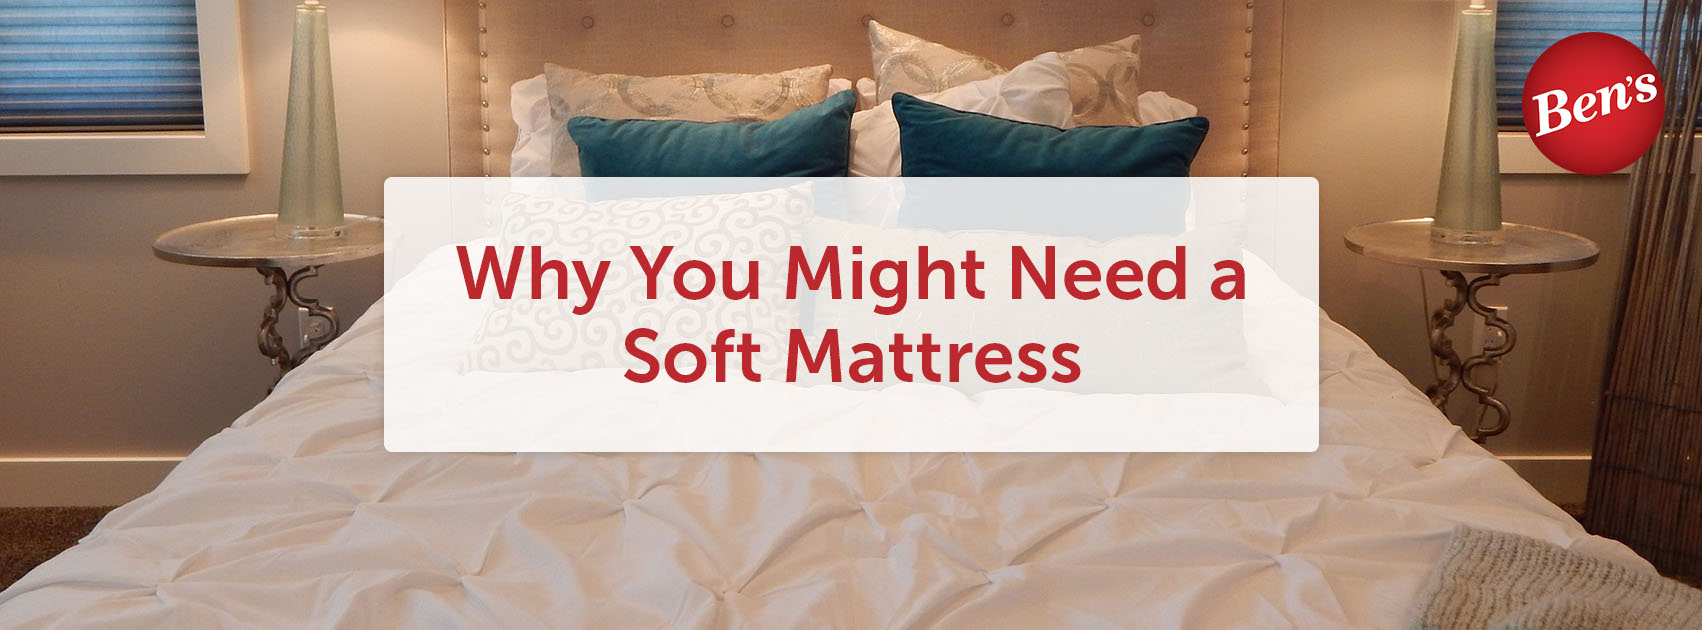 Soft mattress with white sheets and blue pillows in a bedroom.